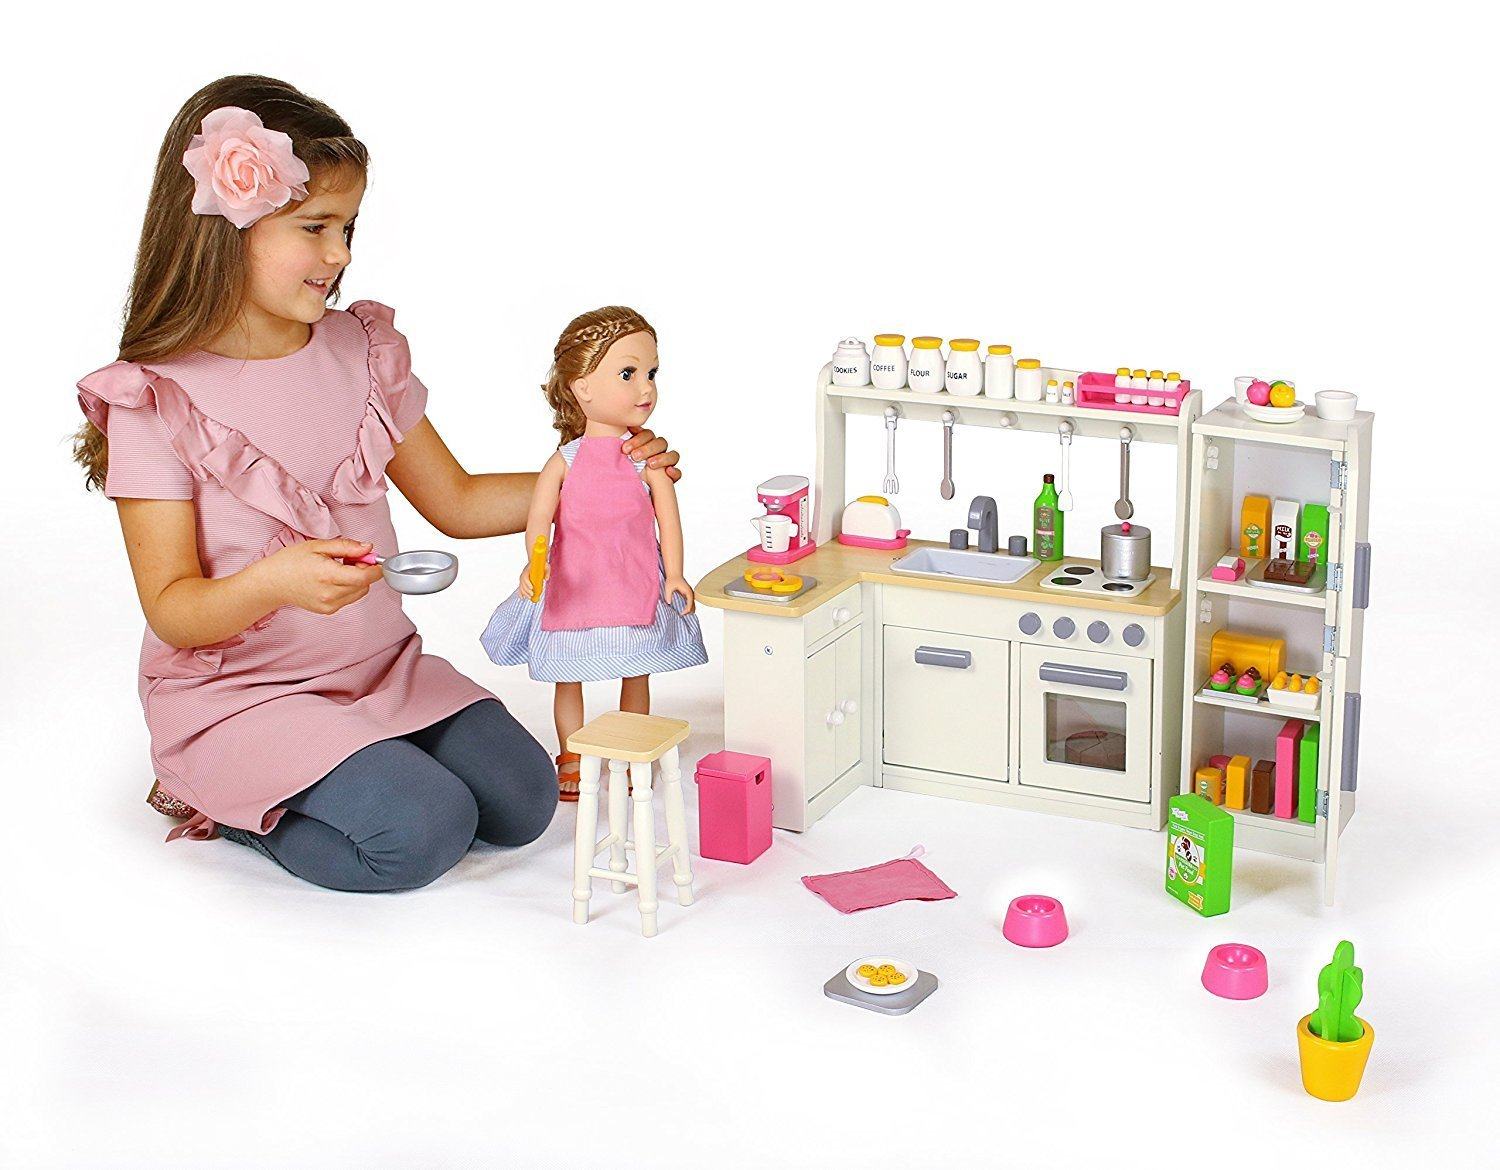 doll kitchen set w refrigerator and accessories shipped wheel n deal mama. Black Bedroom Furniture Sets. Home Design Ideas